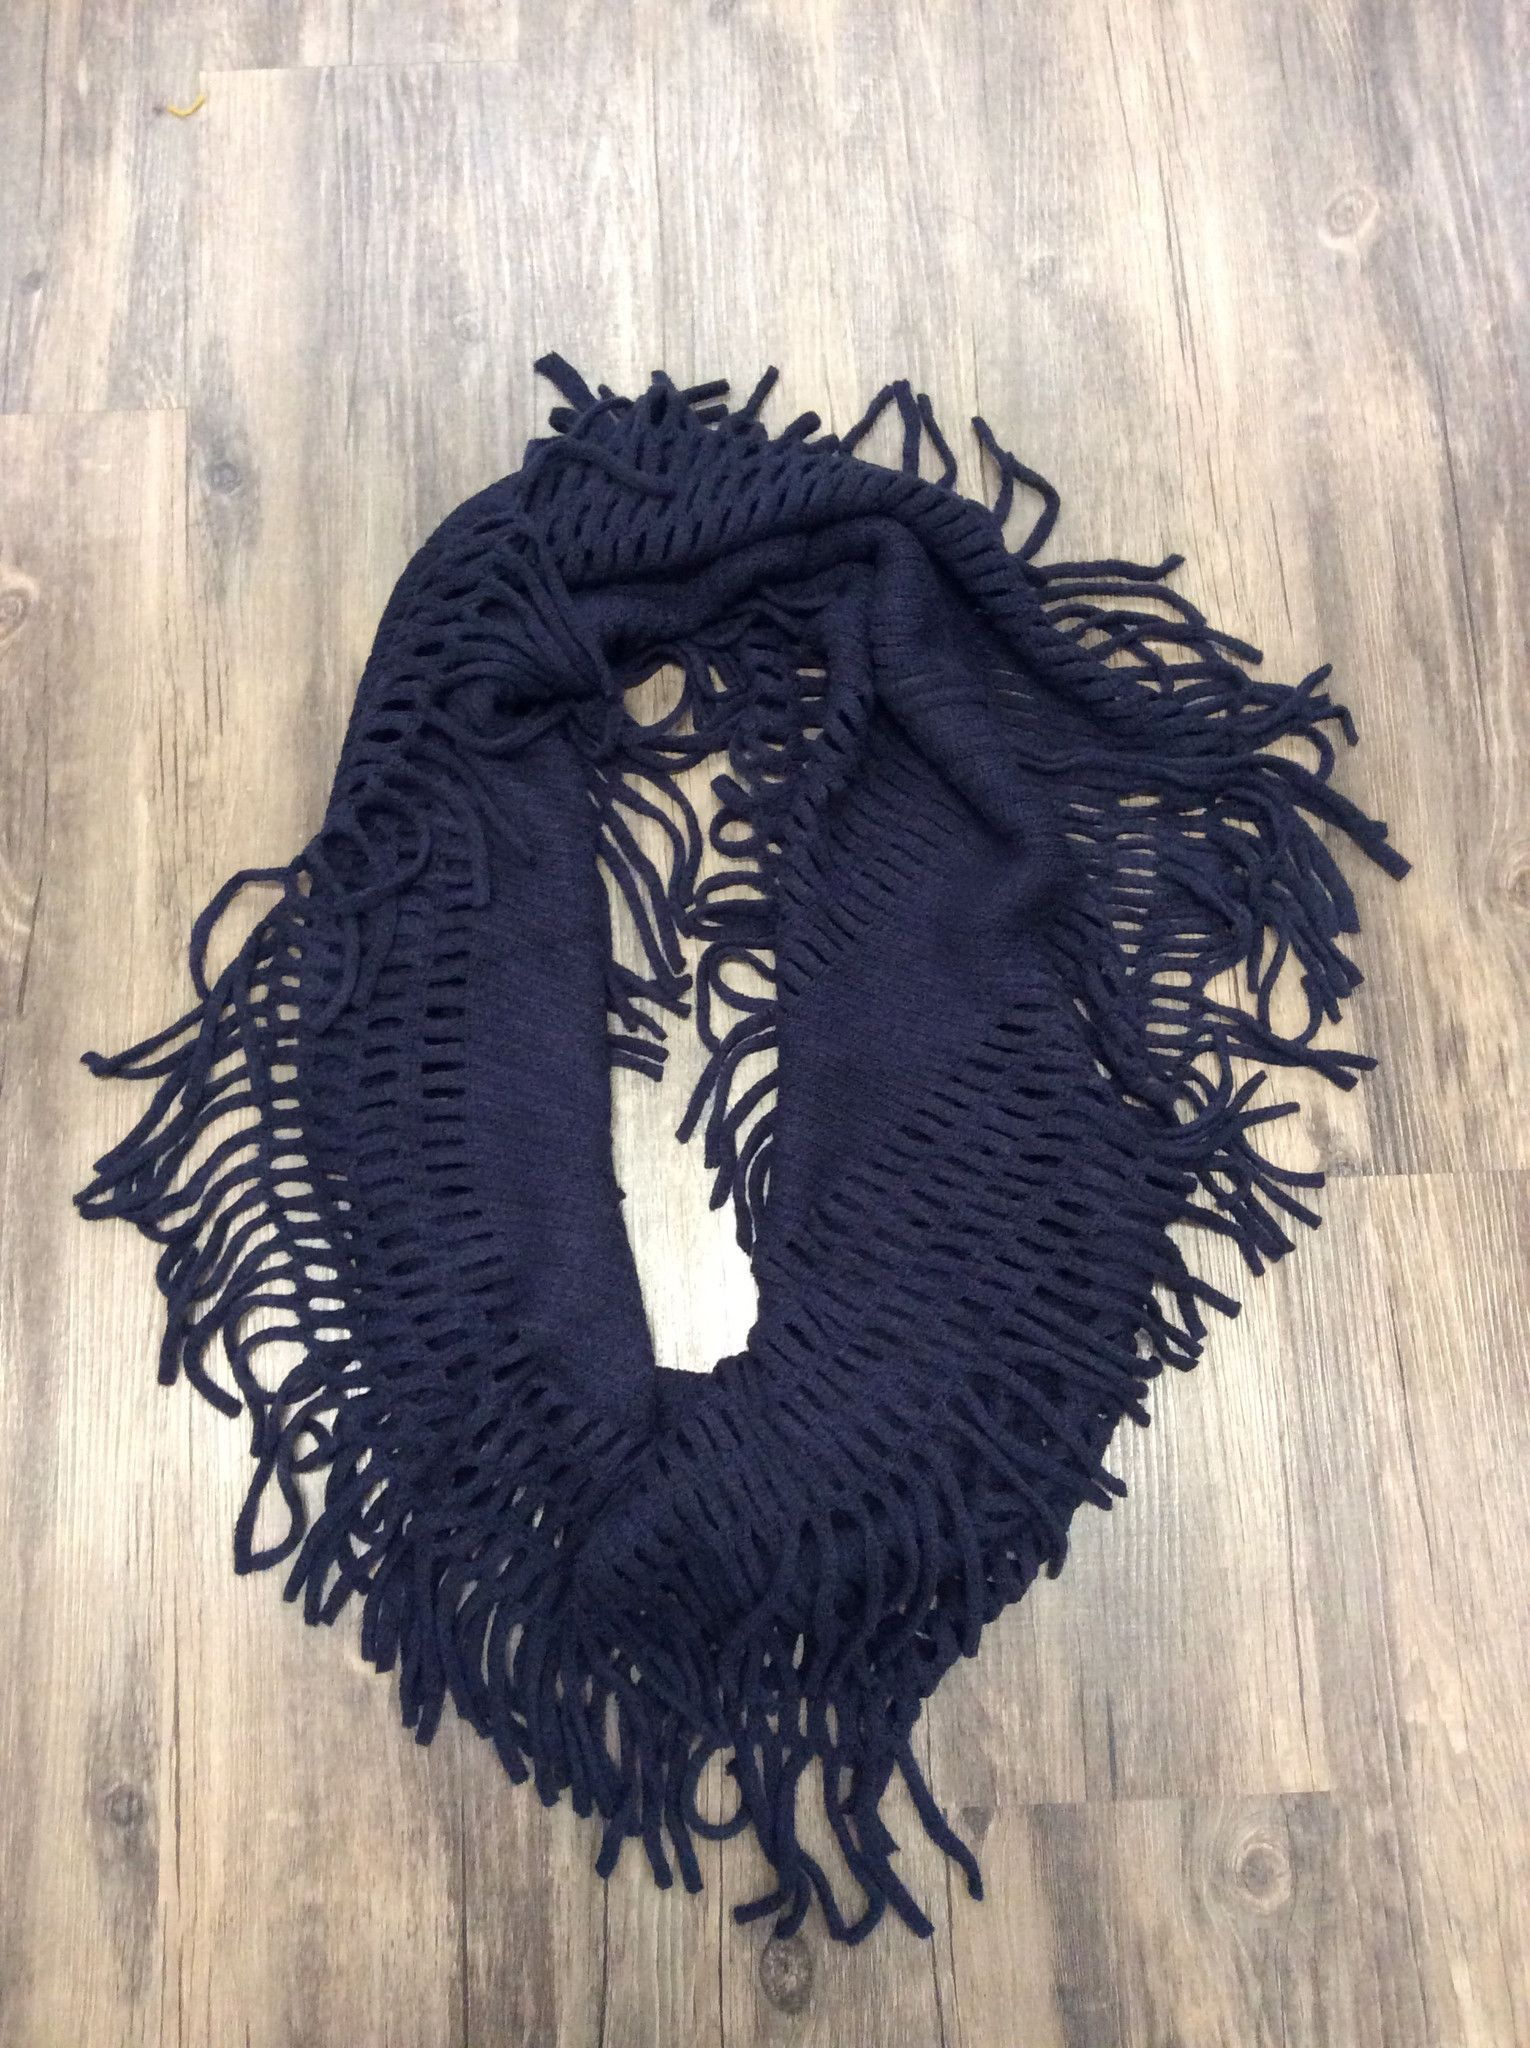 Woven Knit Fringed Infinity Scarf